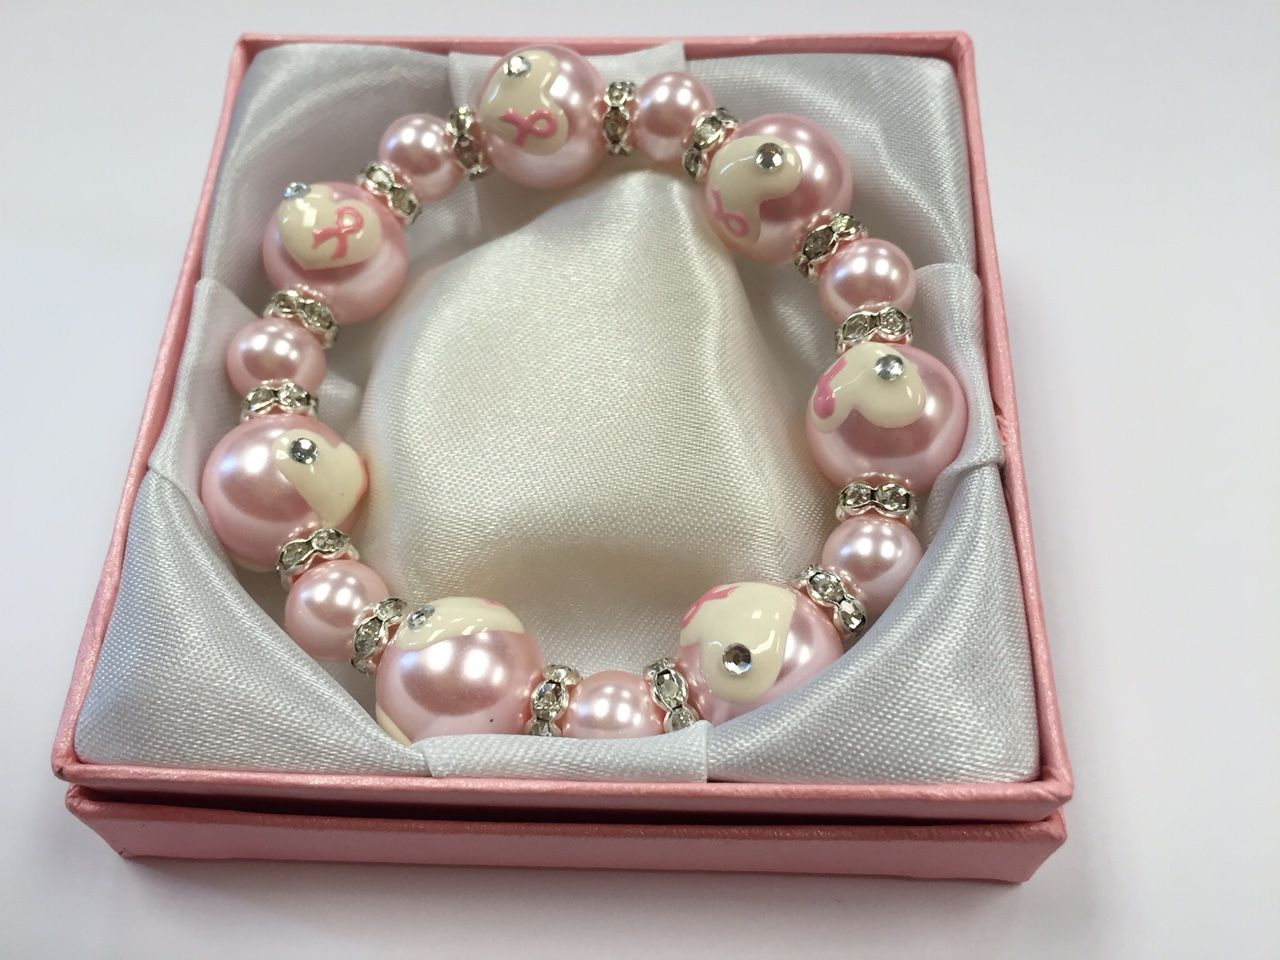 PINK RIBBON LUXI BRACELET WITH GIFT BOX